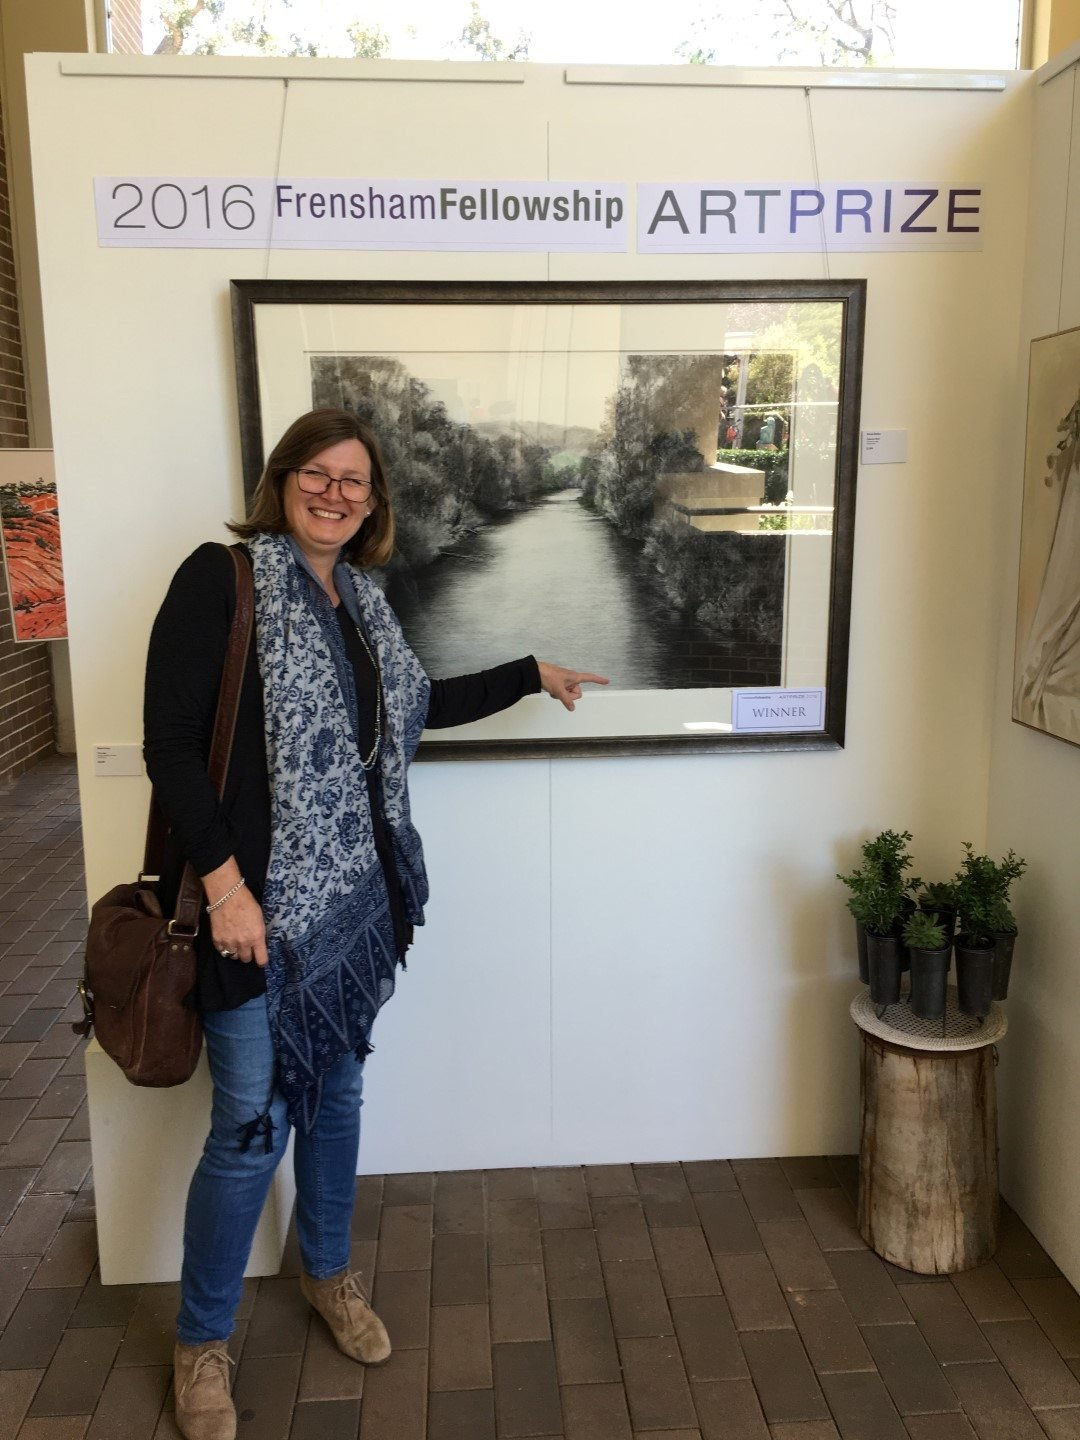 Frensham Fellowship Art Prize – November 2016